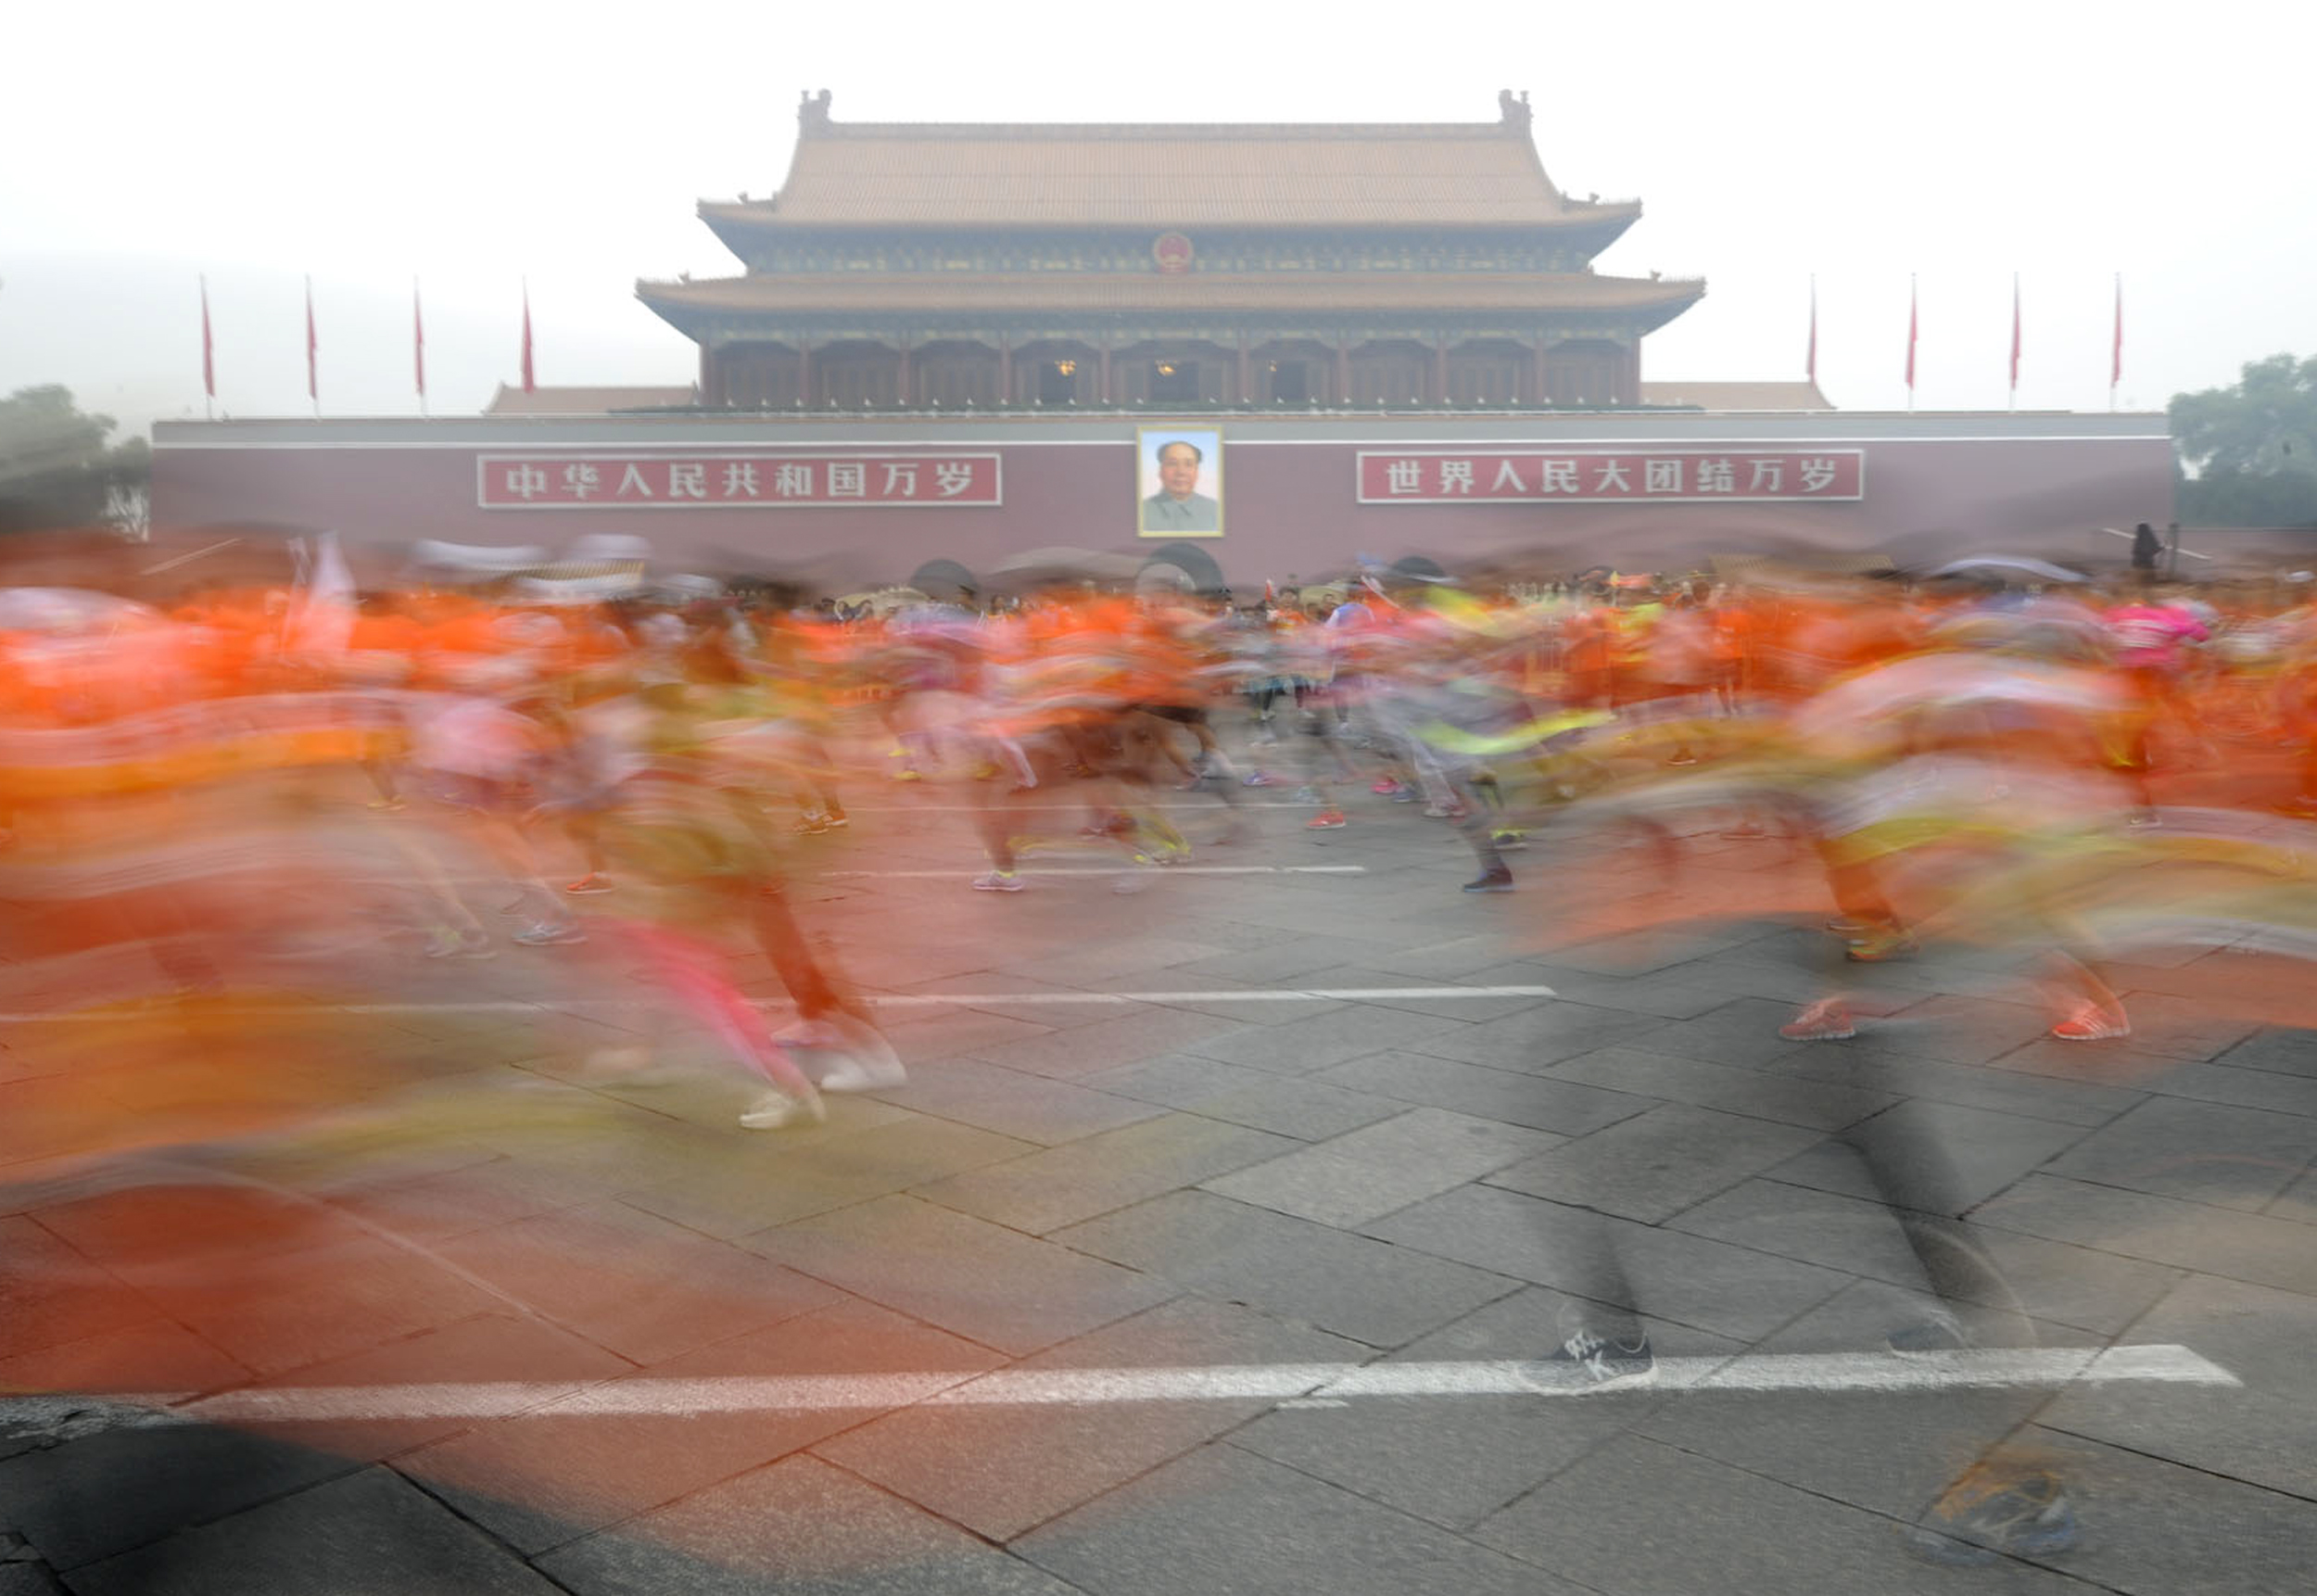 Participants run past the Tiananmen gate with a portrait of China's late leader Mao Zedong during a hazy day at the Beijing International Marathon, Beijing October 19, 2014. REUTERS/Stringer